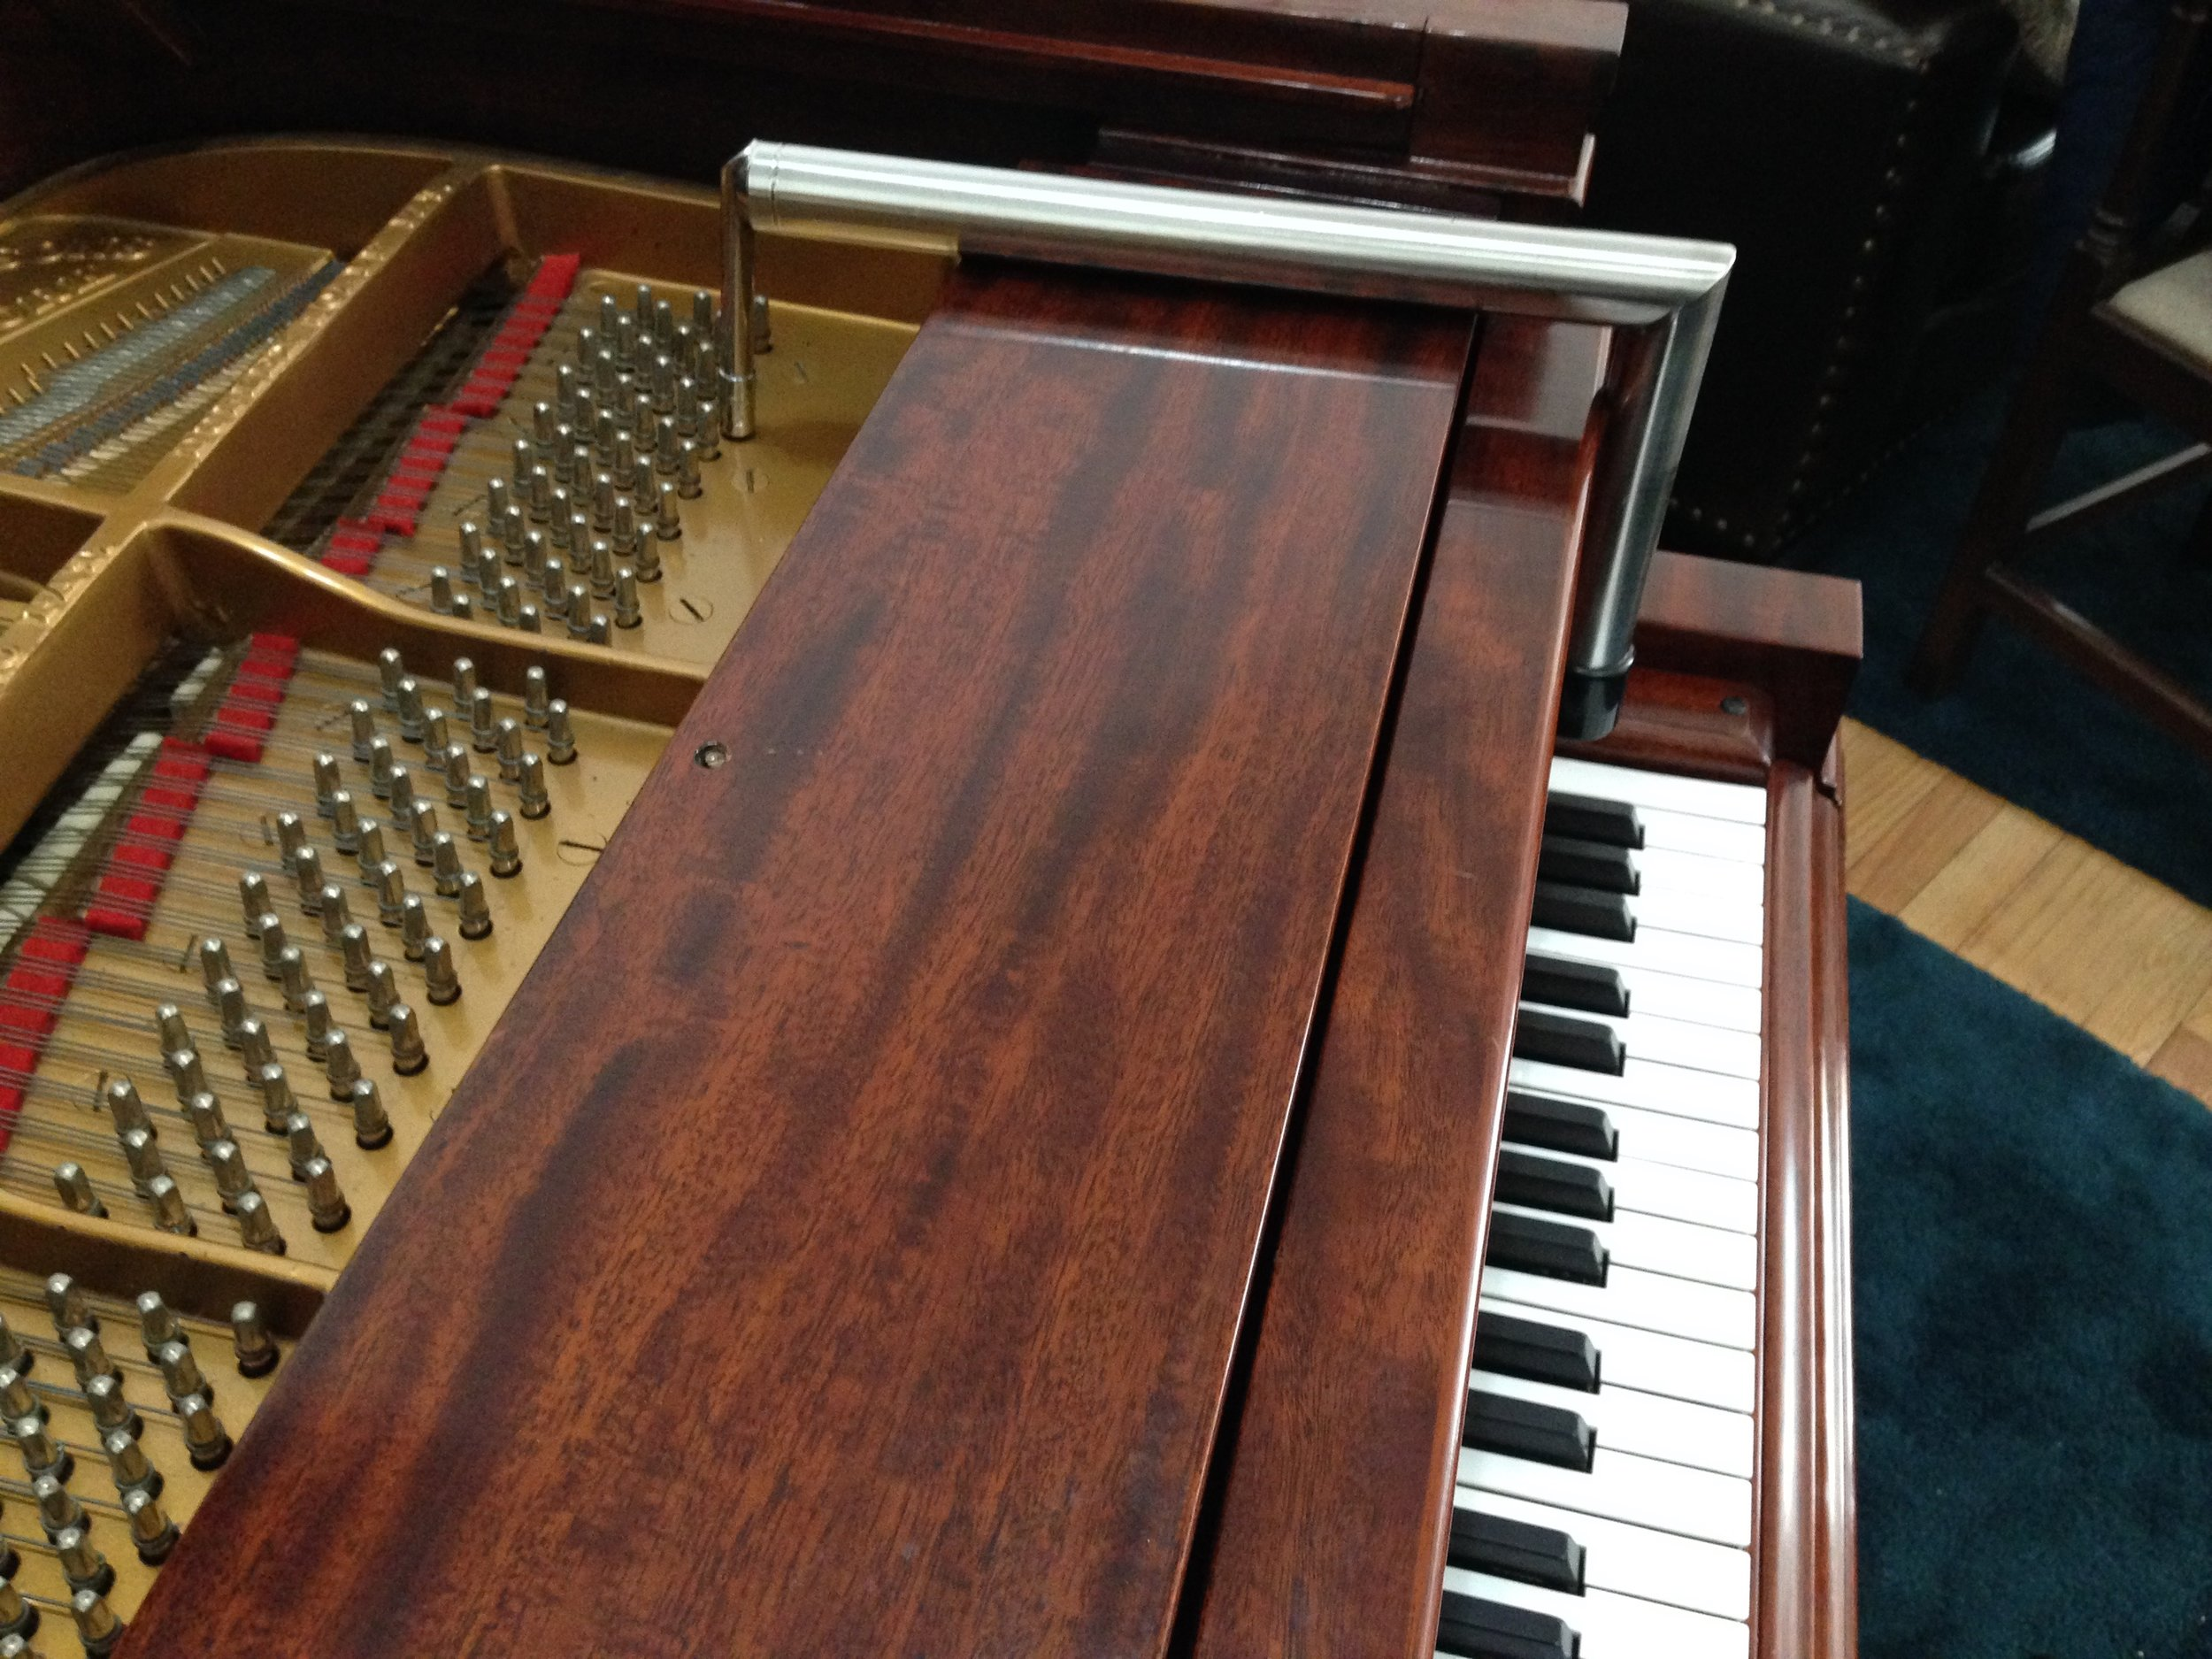 You'll also need an L-lever for pianos like the Steinway/Aeolian O.